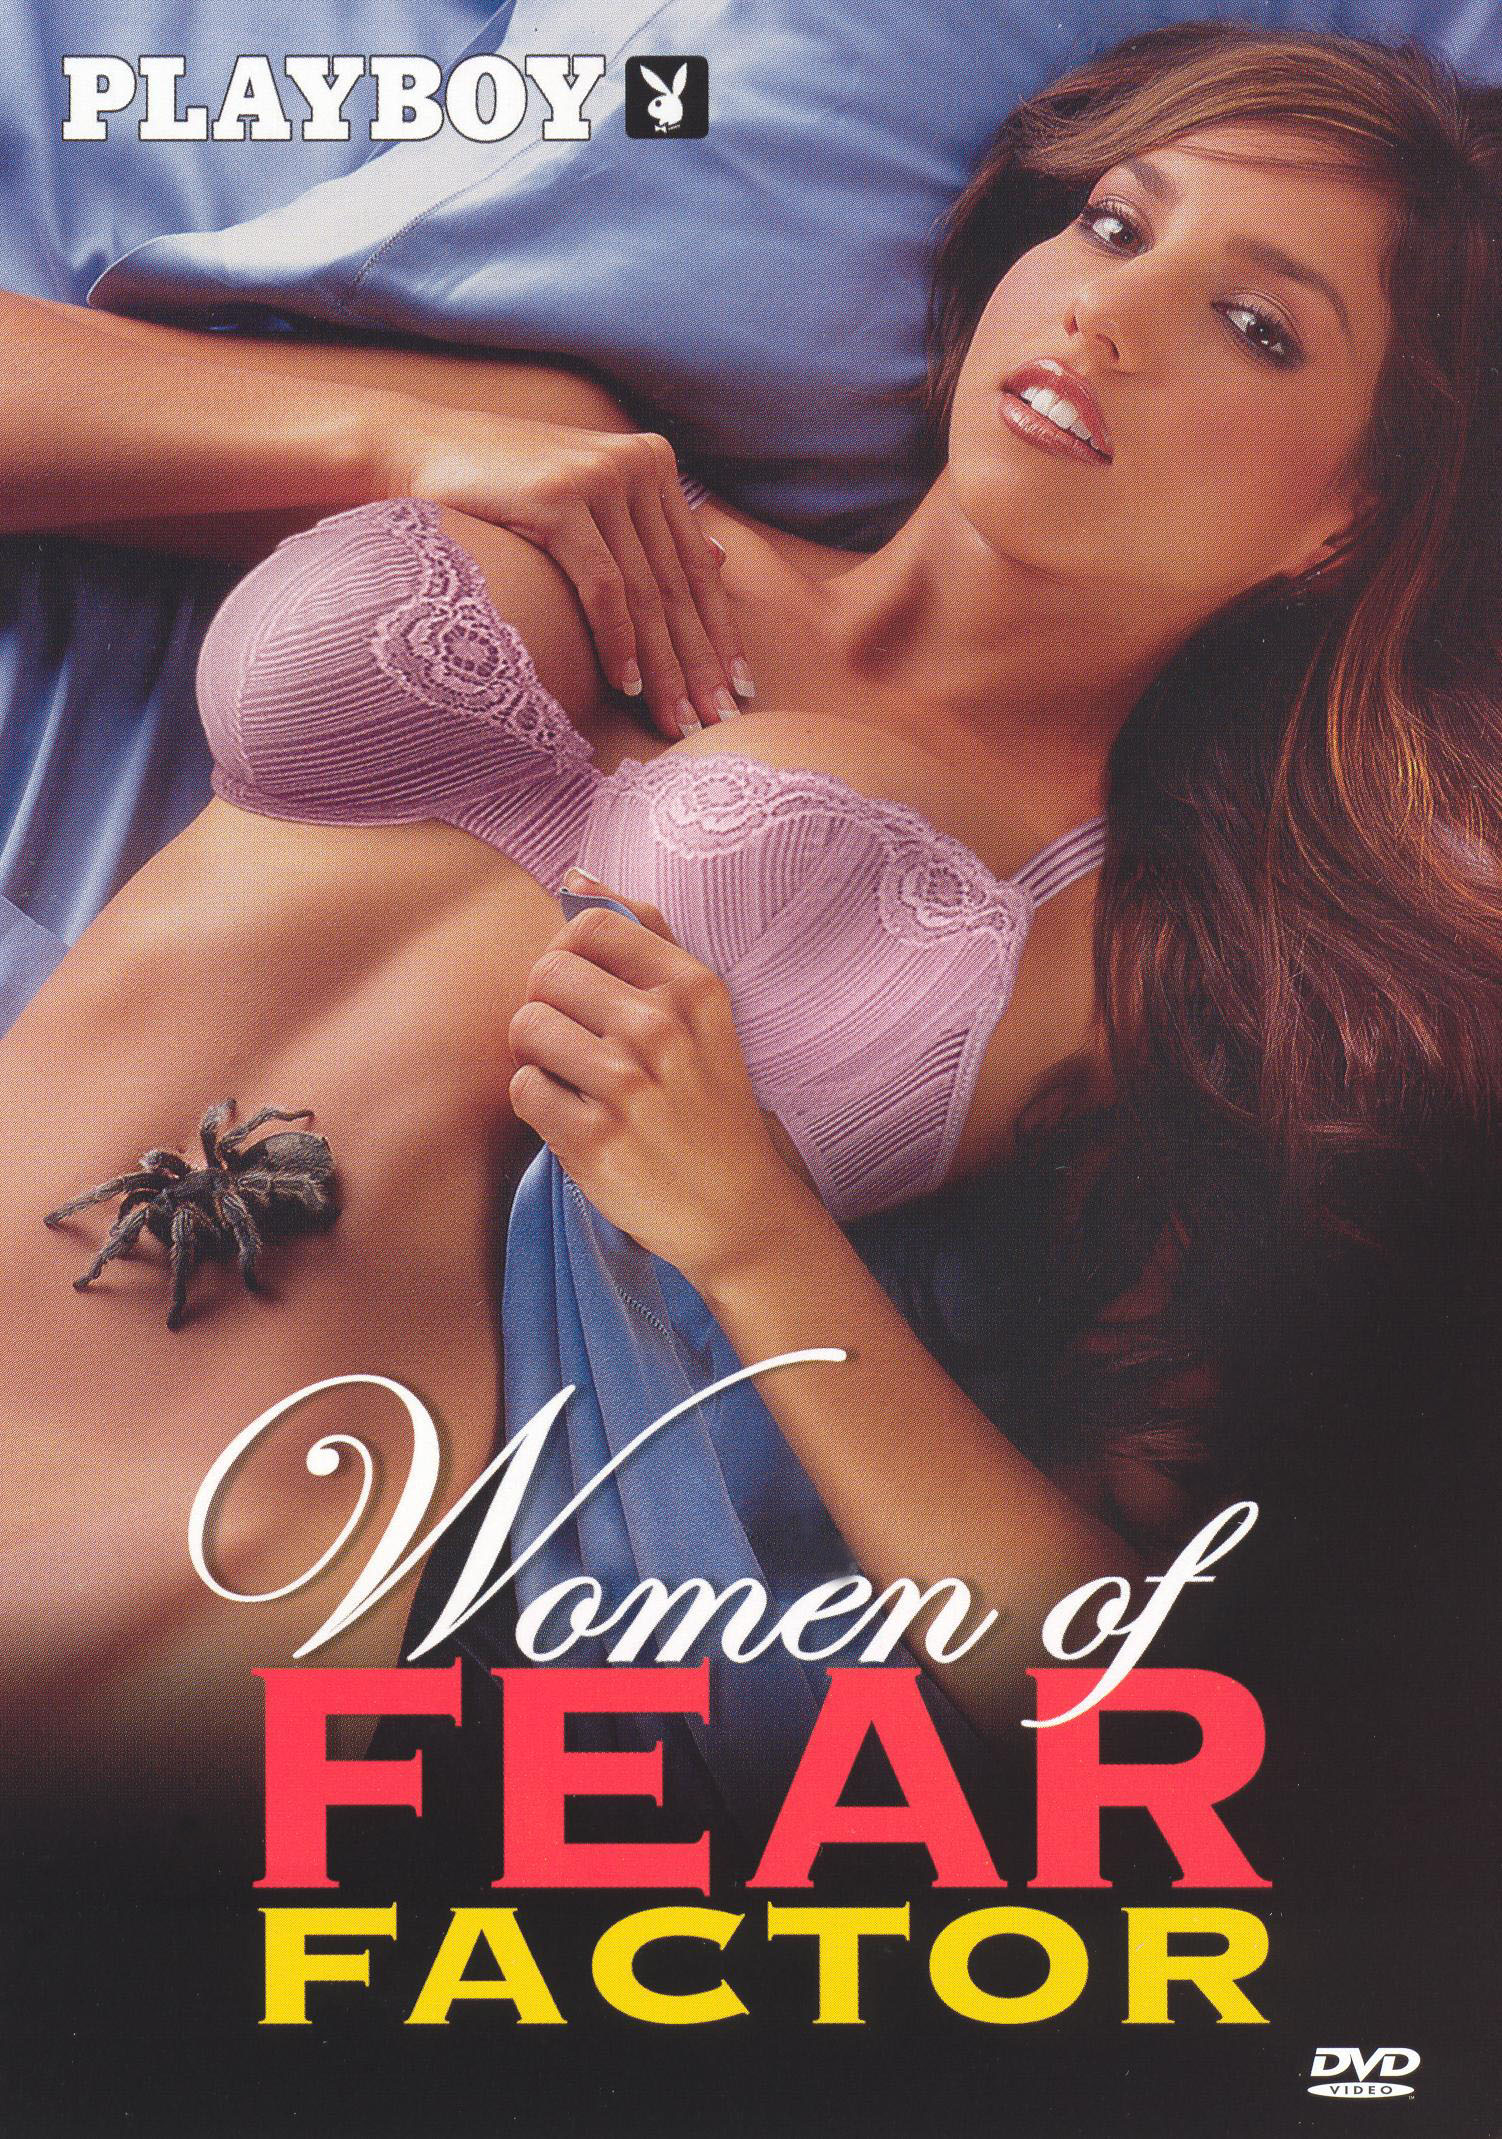 Playboy: Women of Fear Factor